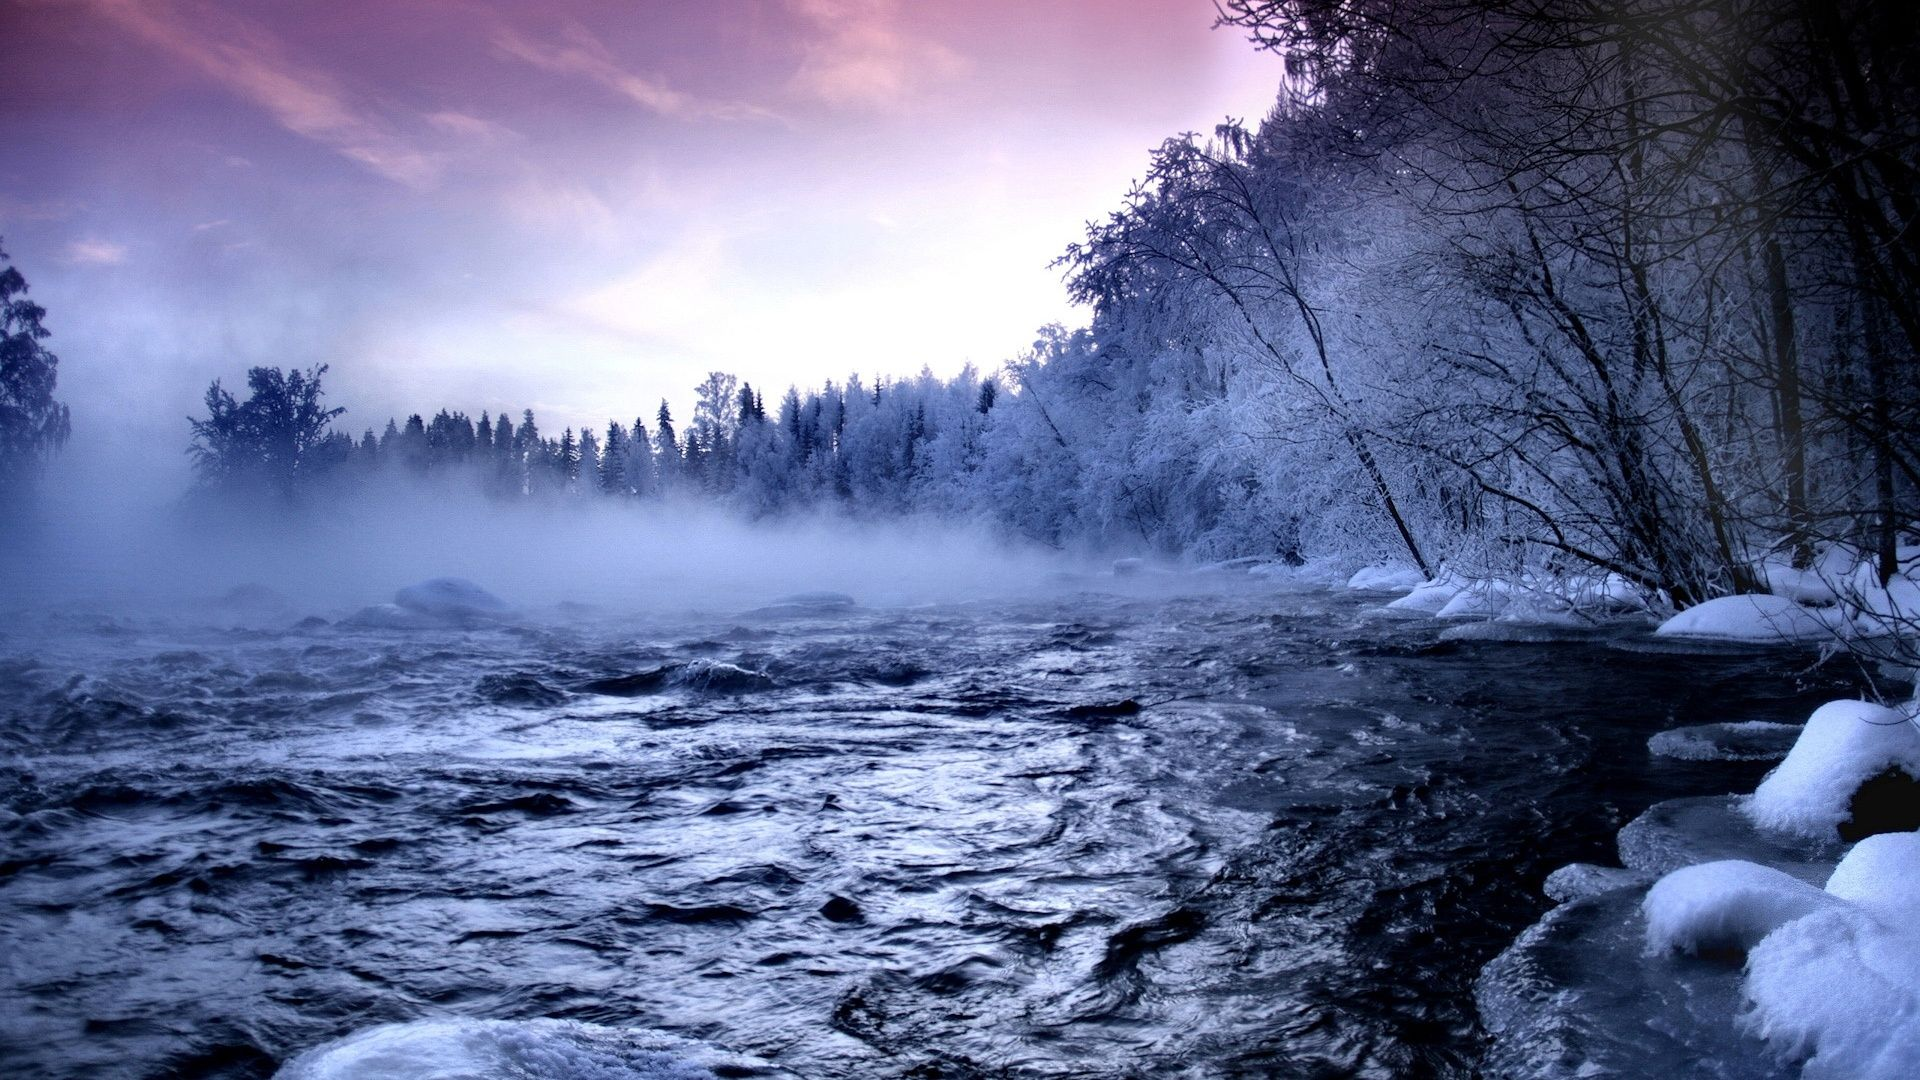 snow scenery full hd - photo #25